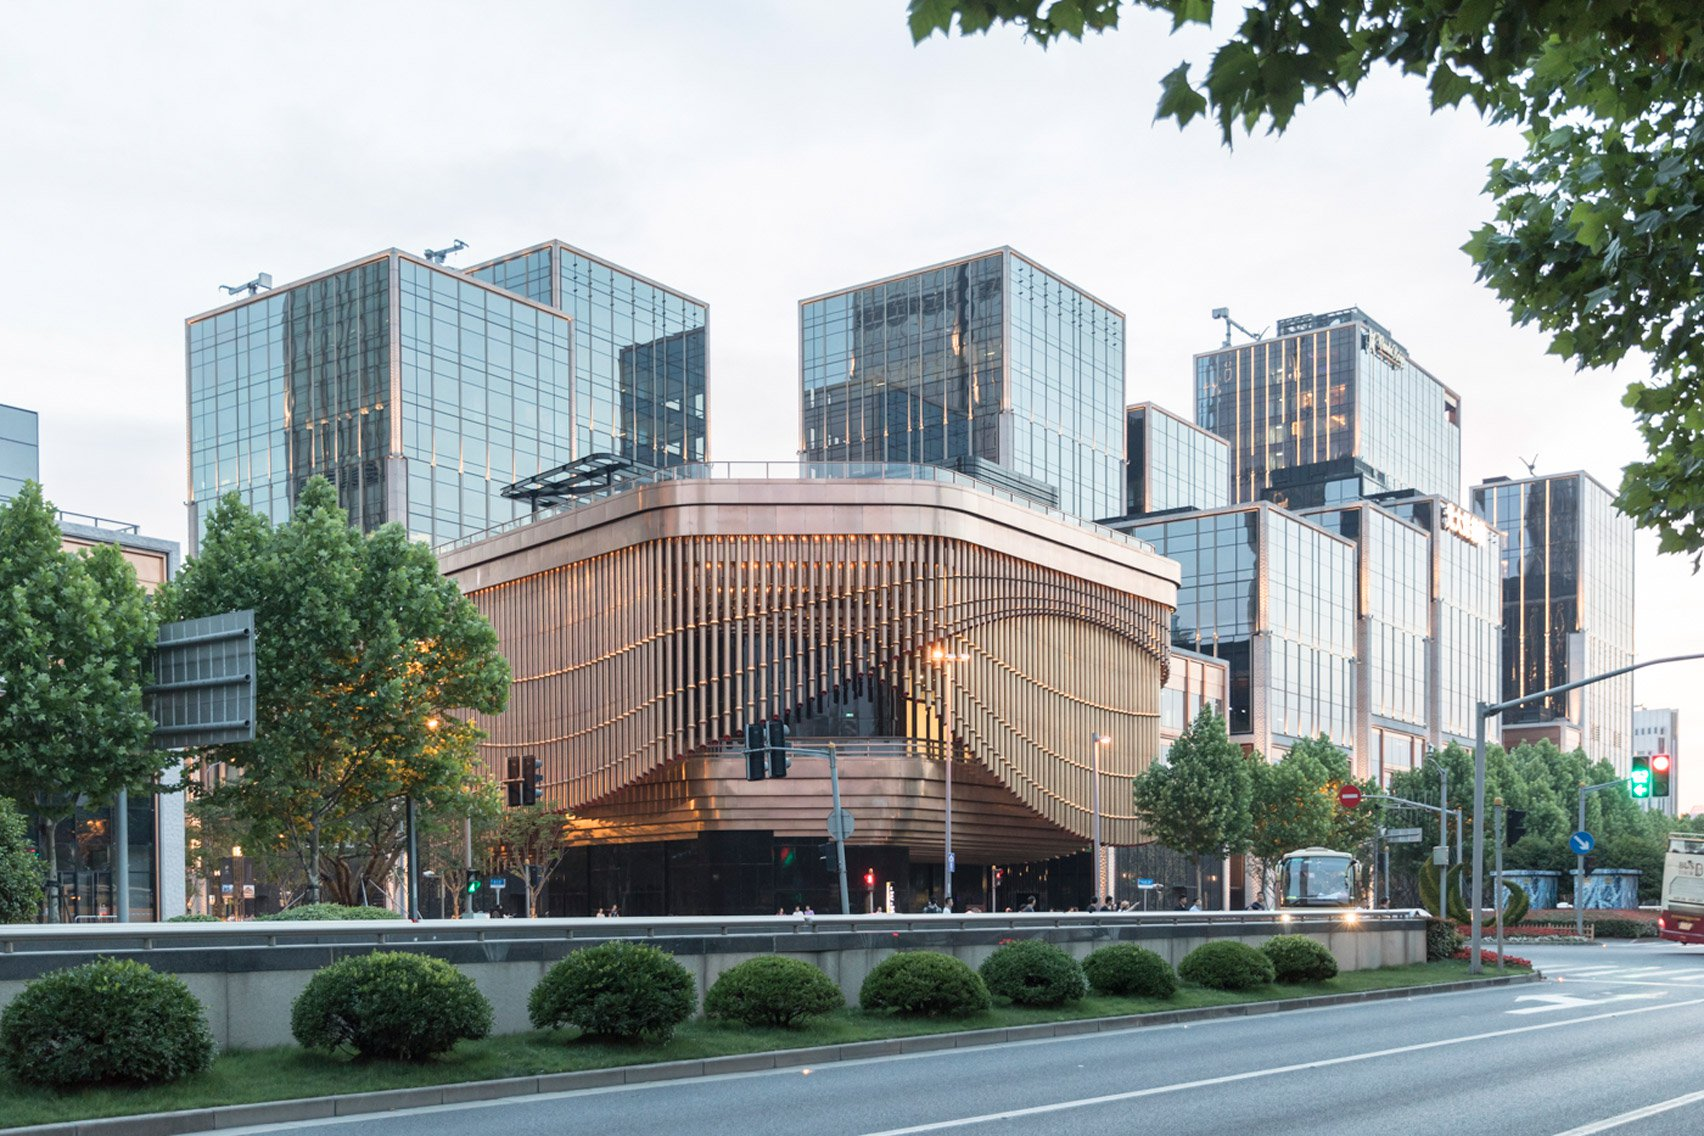 design project Foster + Partners And Heatherwick Studio Pair Up For Design Project Foster Partners And Heatherwick Studio Pair Up For Design Project 2